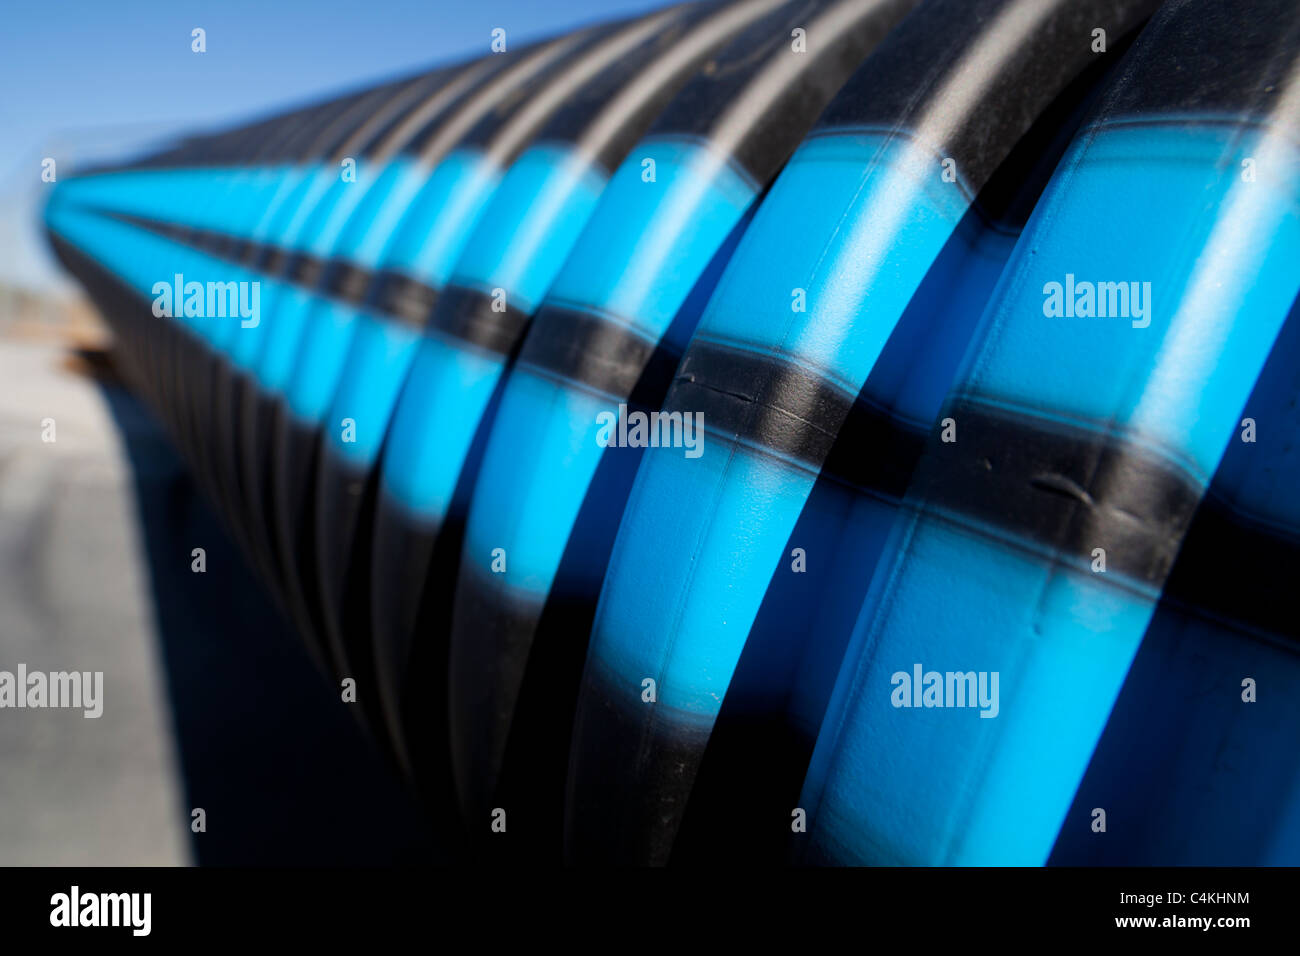 Blue and black stripes on grooved PVC water pipe surface Stock Foto